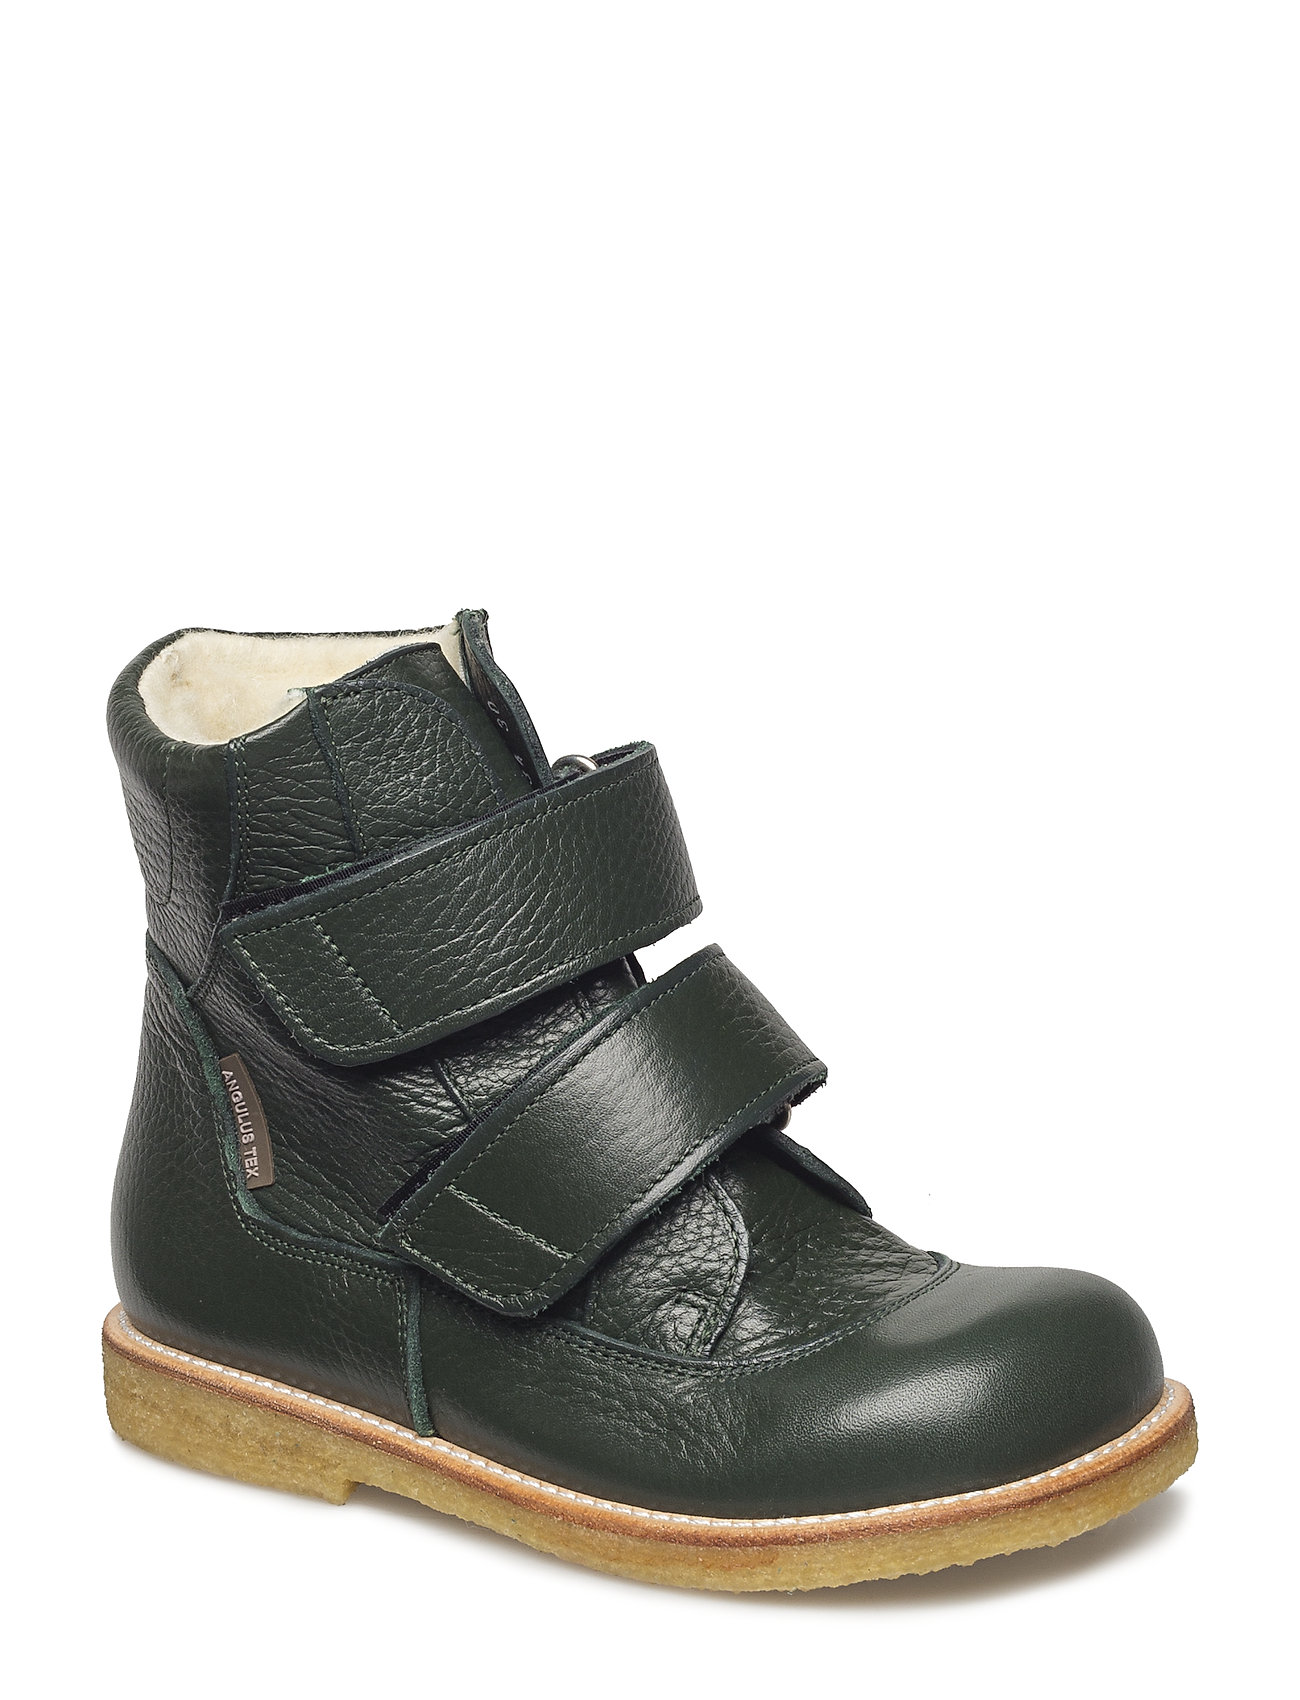 Image of Boots - Flat - With Velcro (3047198077)